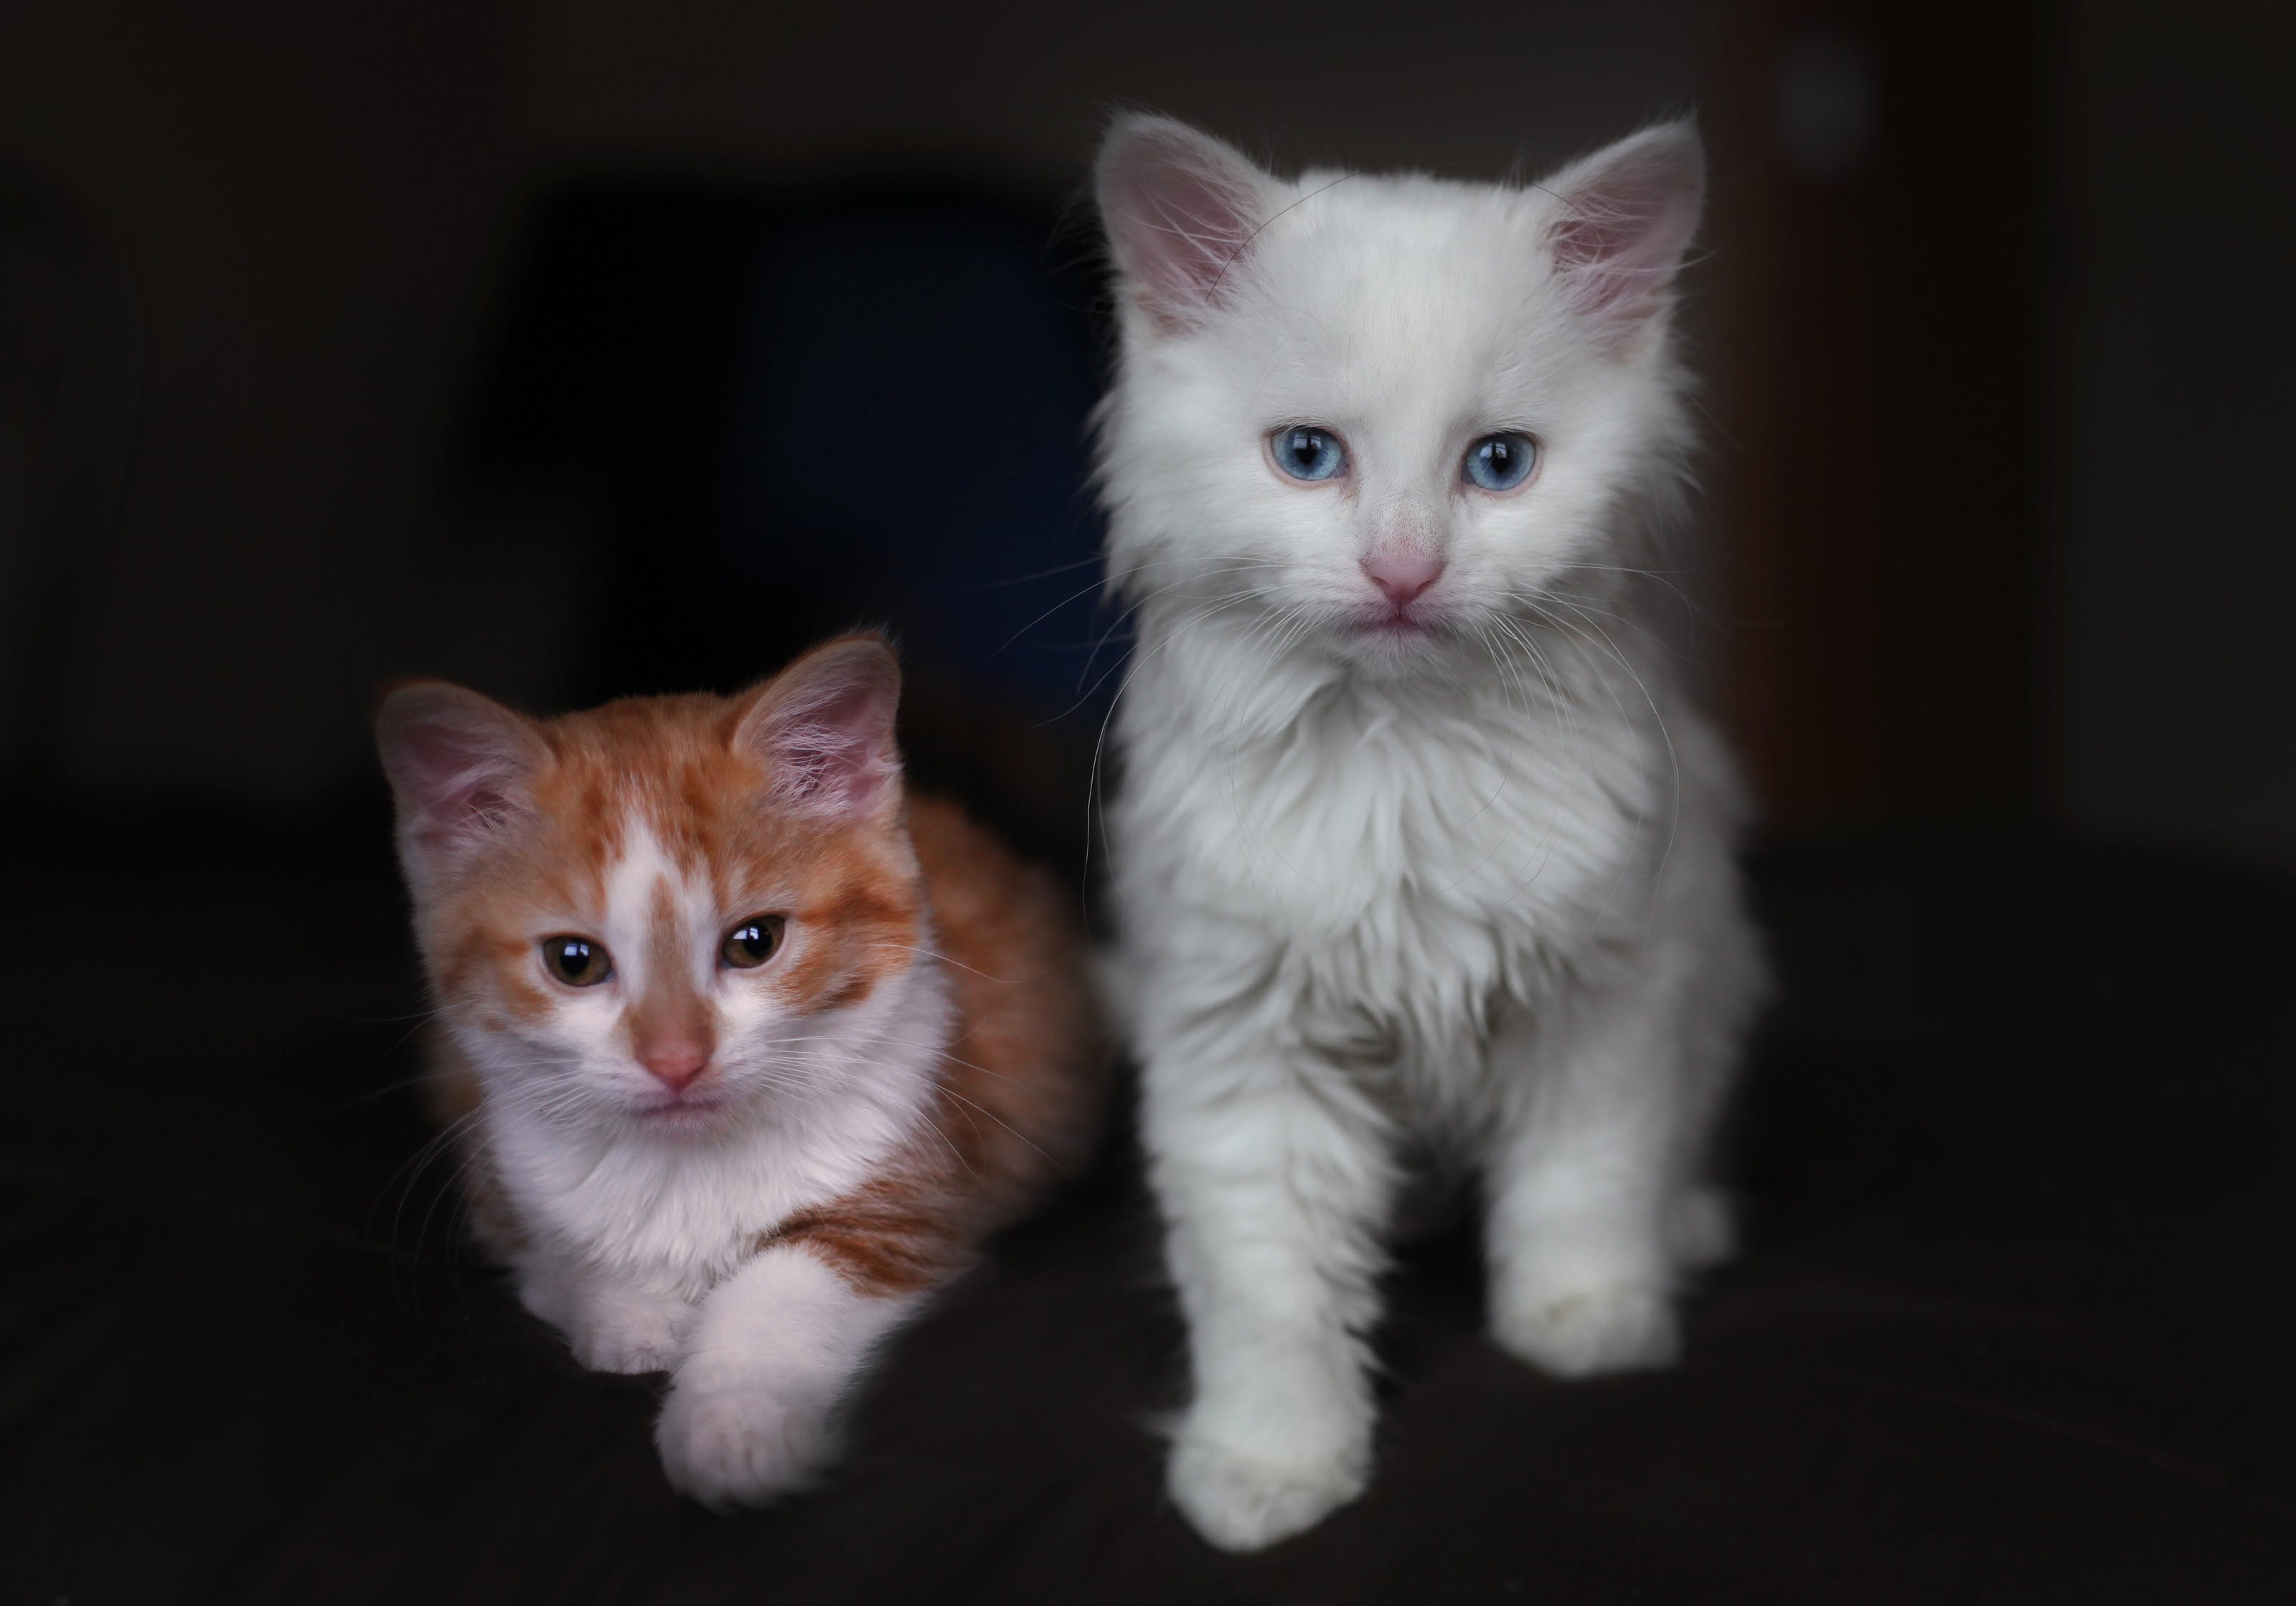 Free stock photo of cats kittens